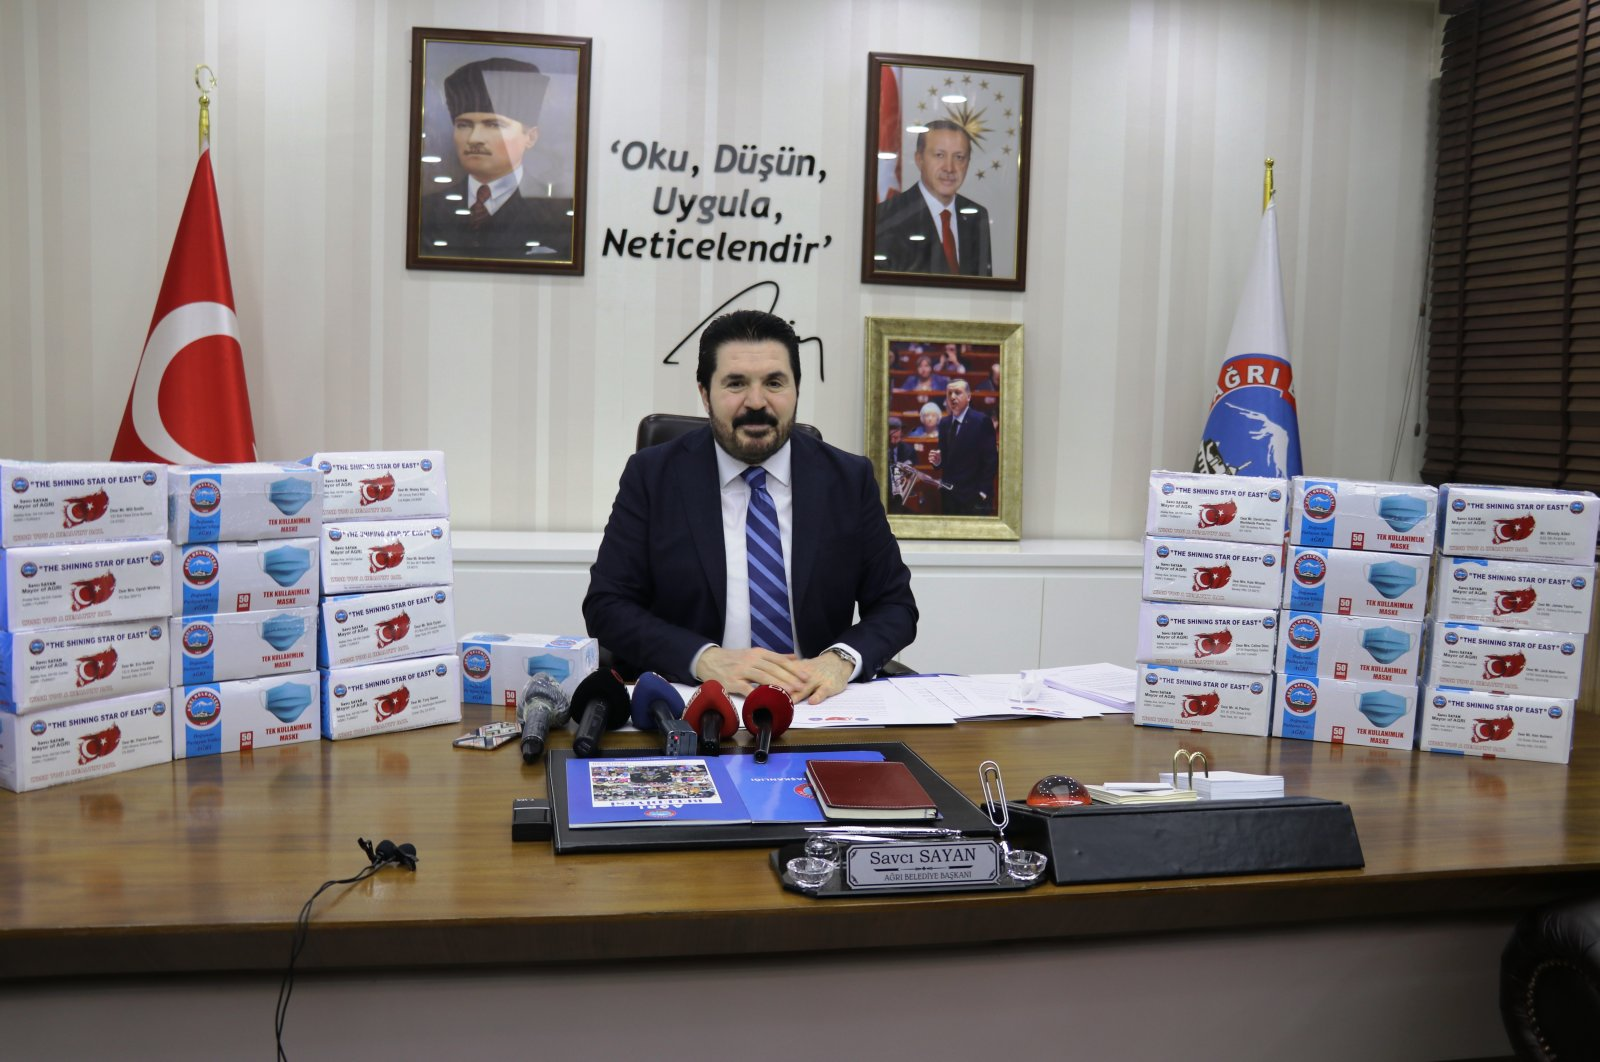 Ağrı Mayor Savcı Sayan poses with the boxes of masks to be sent to U.S., in northeastern Ağrı province, Turkey, April 28, 2020. (AA Photo)